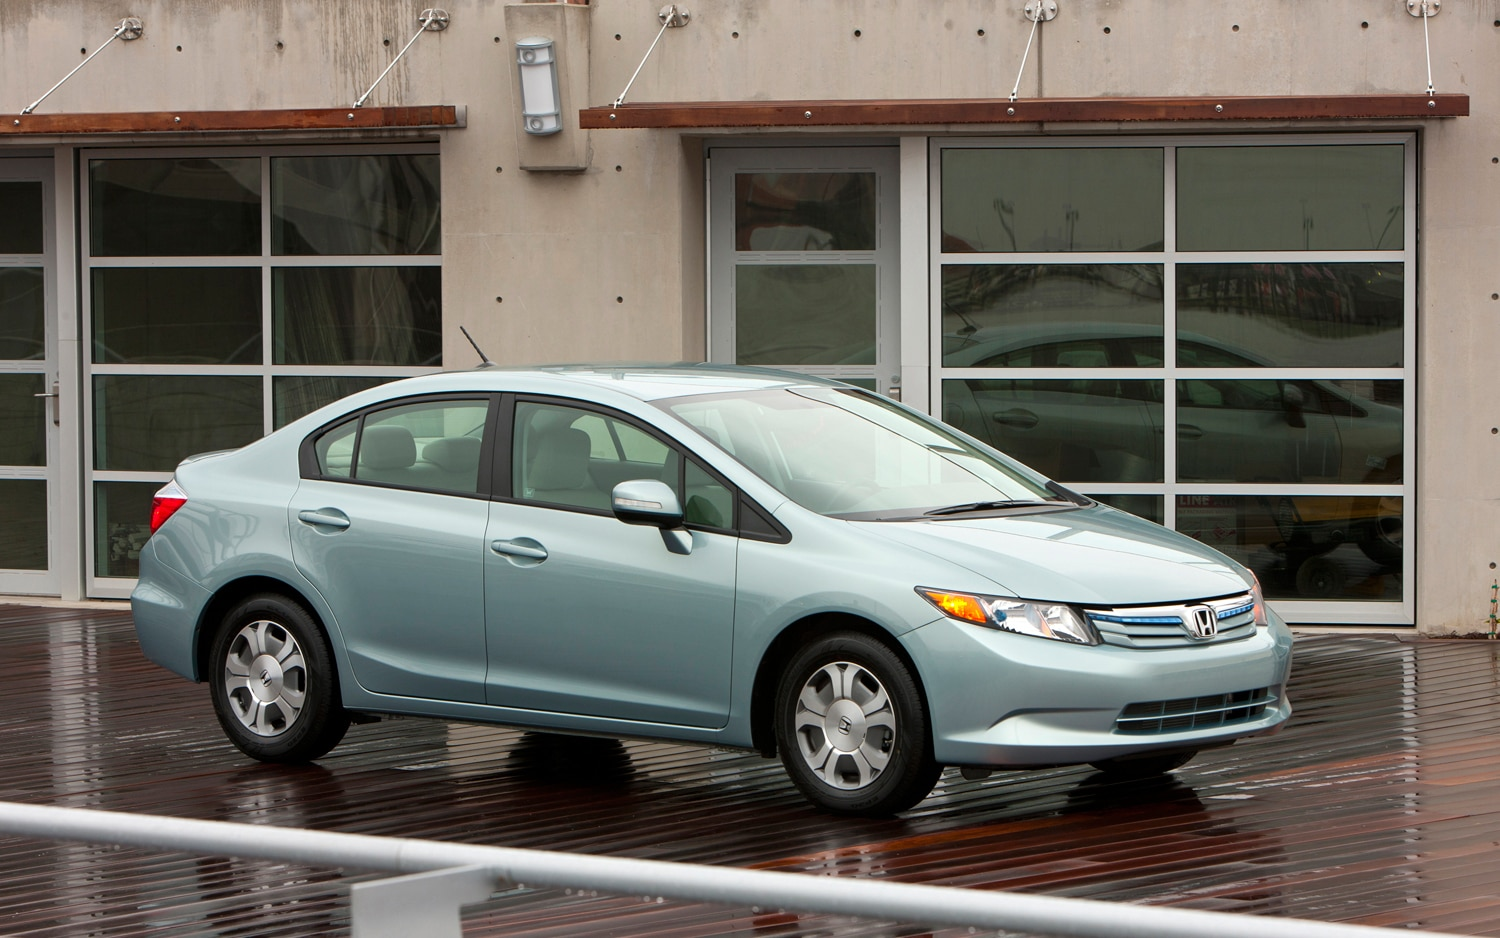 Epa Names Top 10 Most Fuel Efficient Cars For 2012